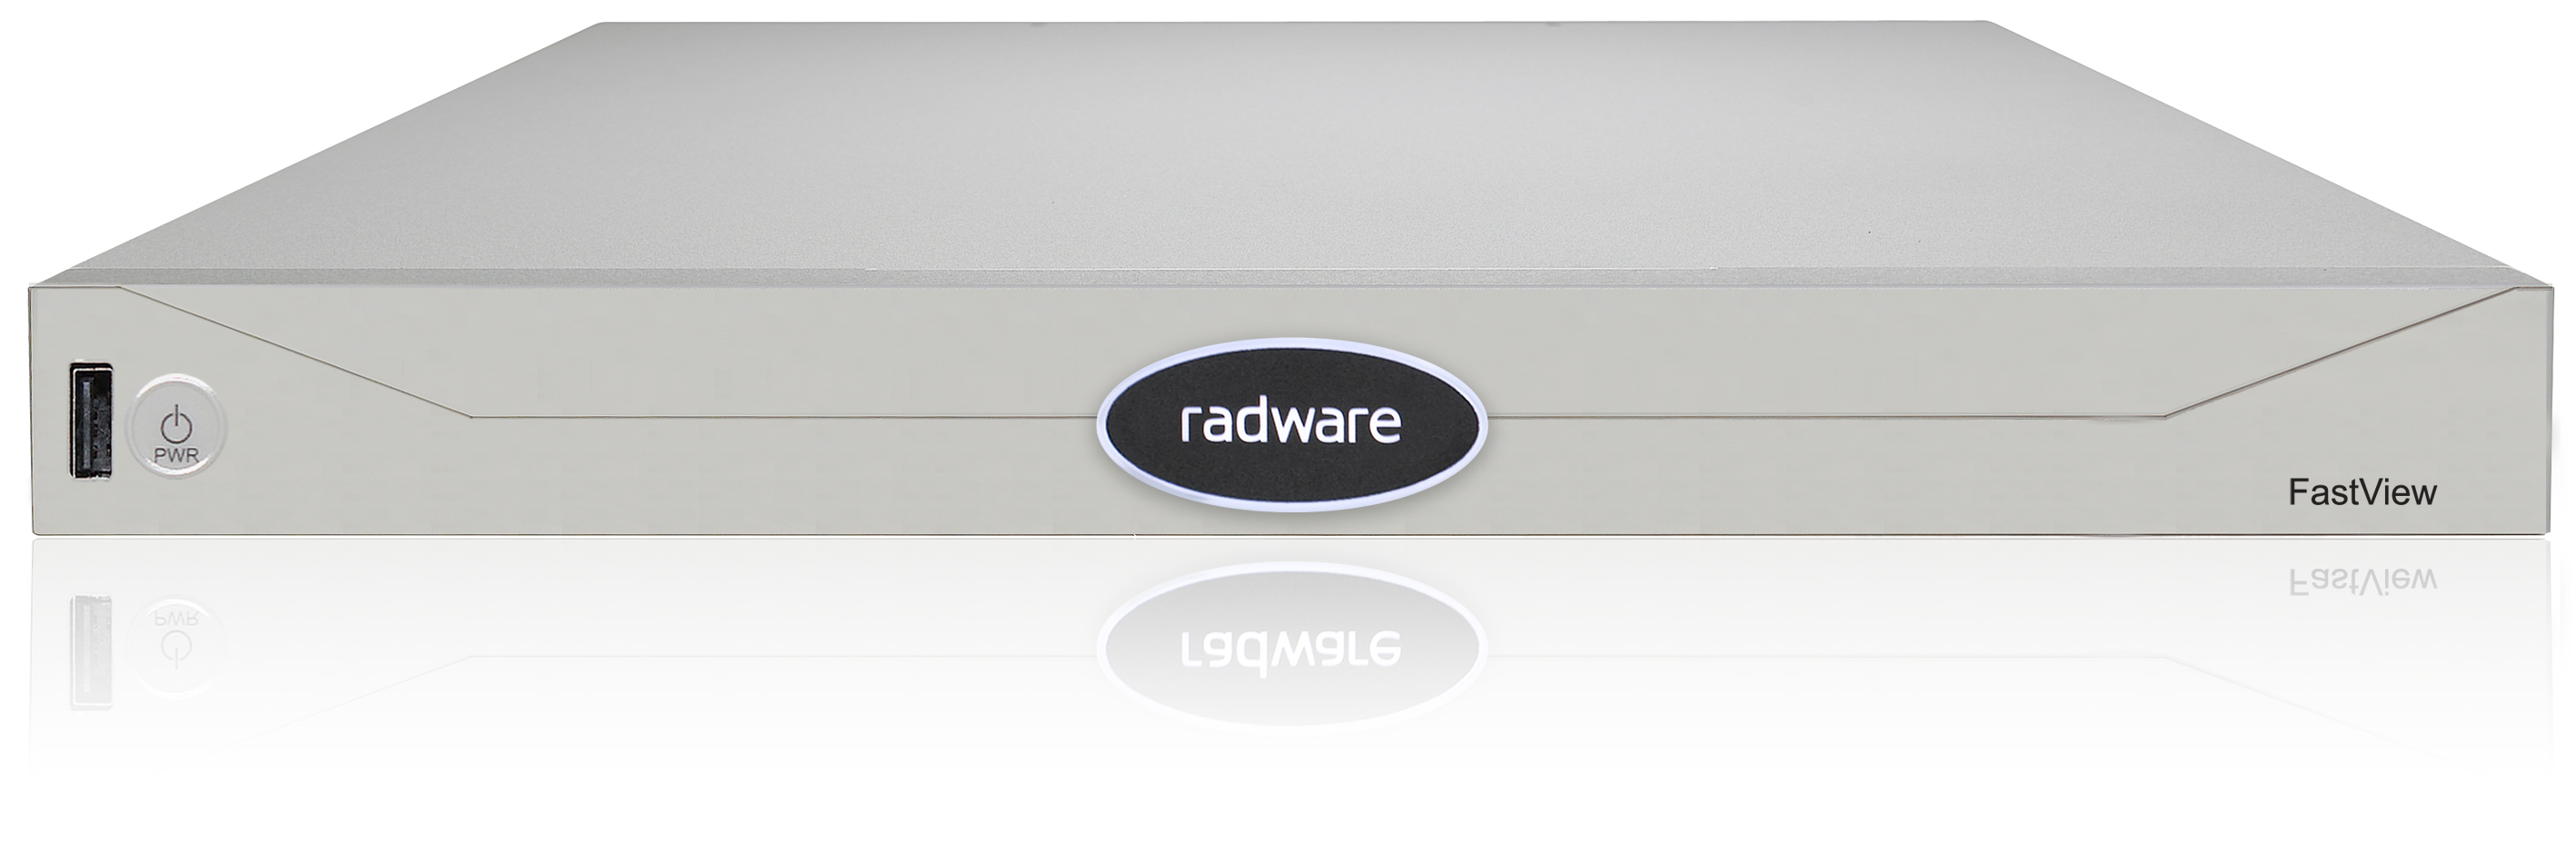 FastView Appliance